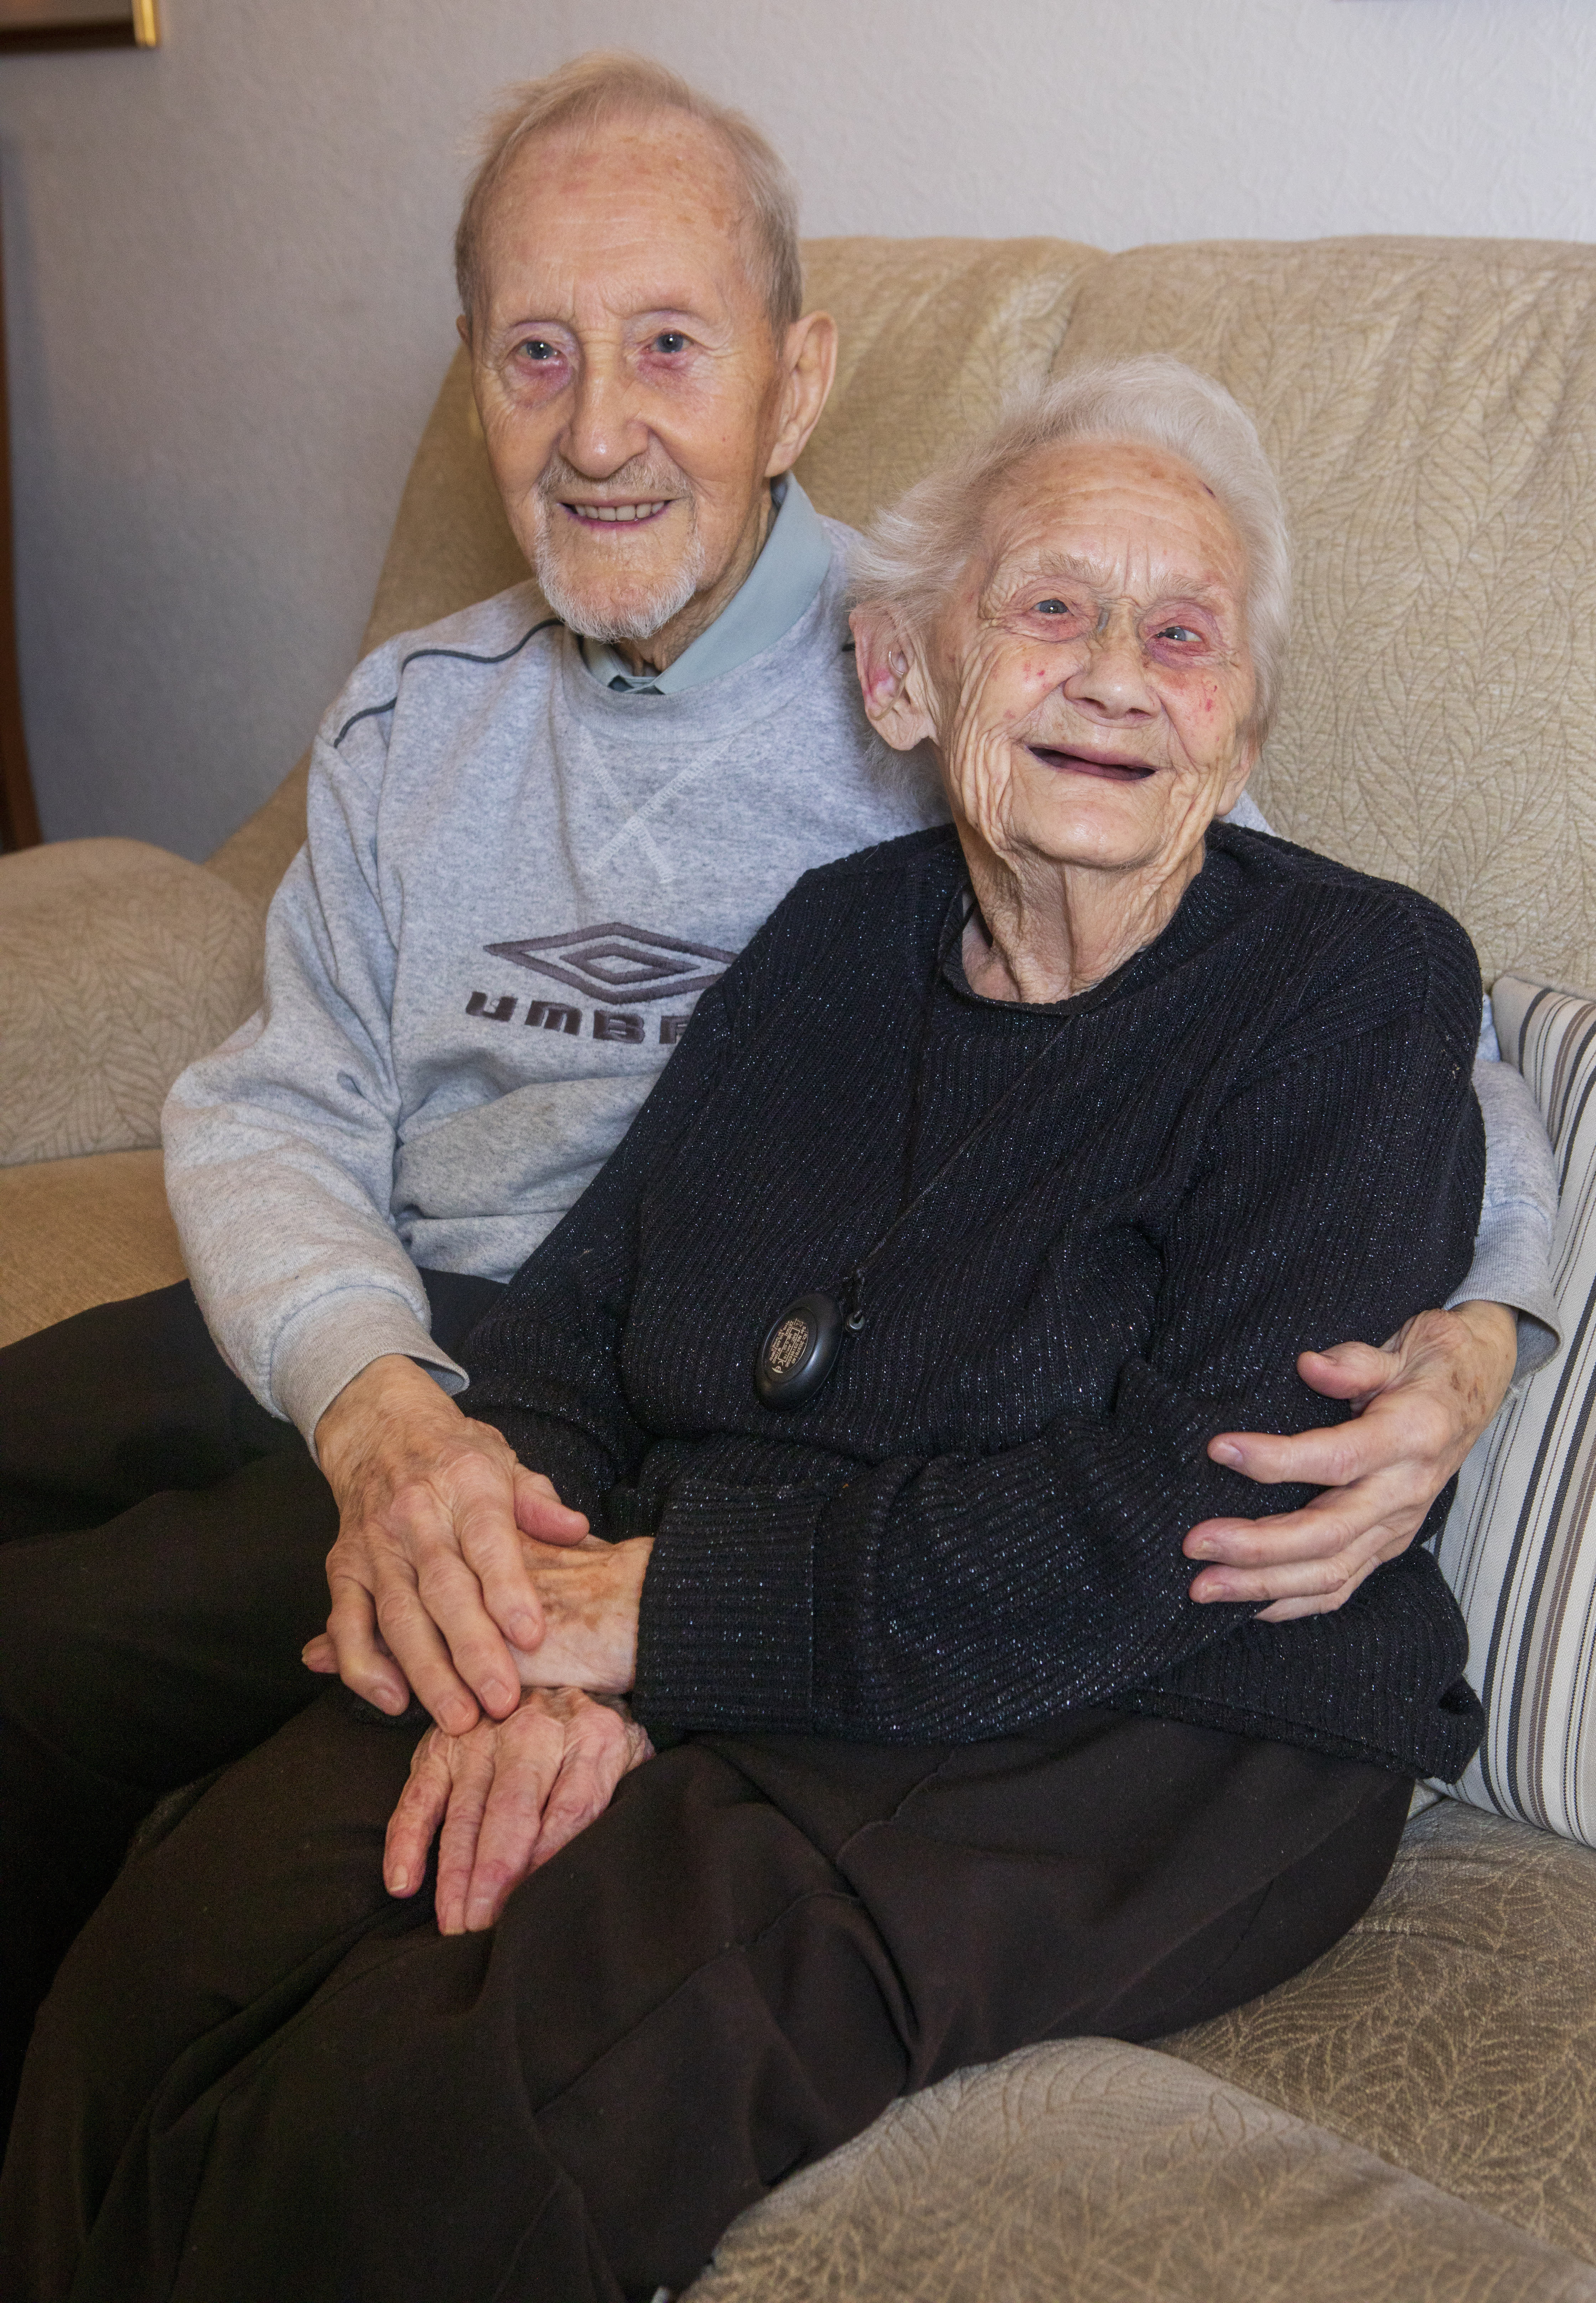 Robert, 93, and Alison Snaddon, 91, are celebrating their 75th wedding anniversary. [Photo: SWNS]